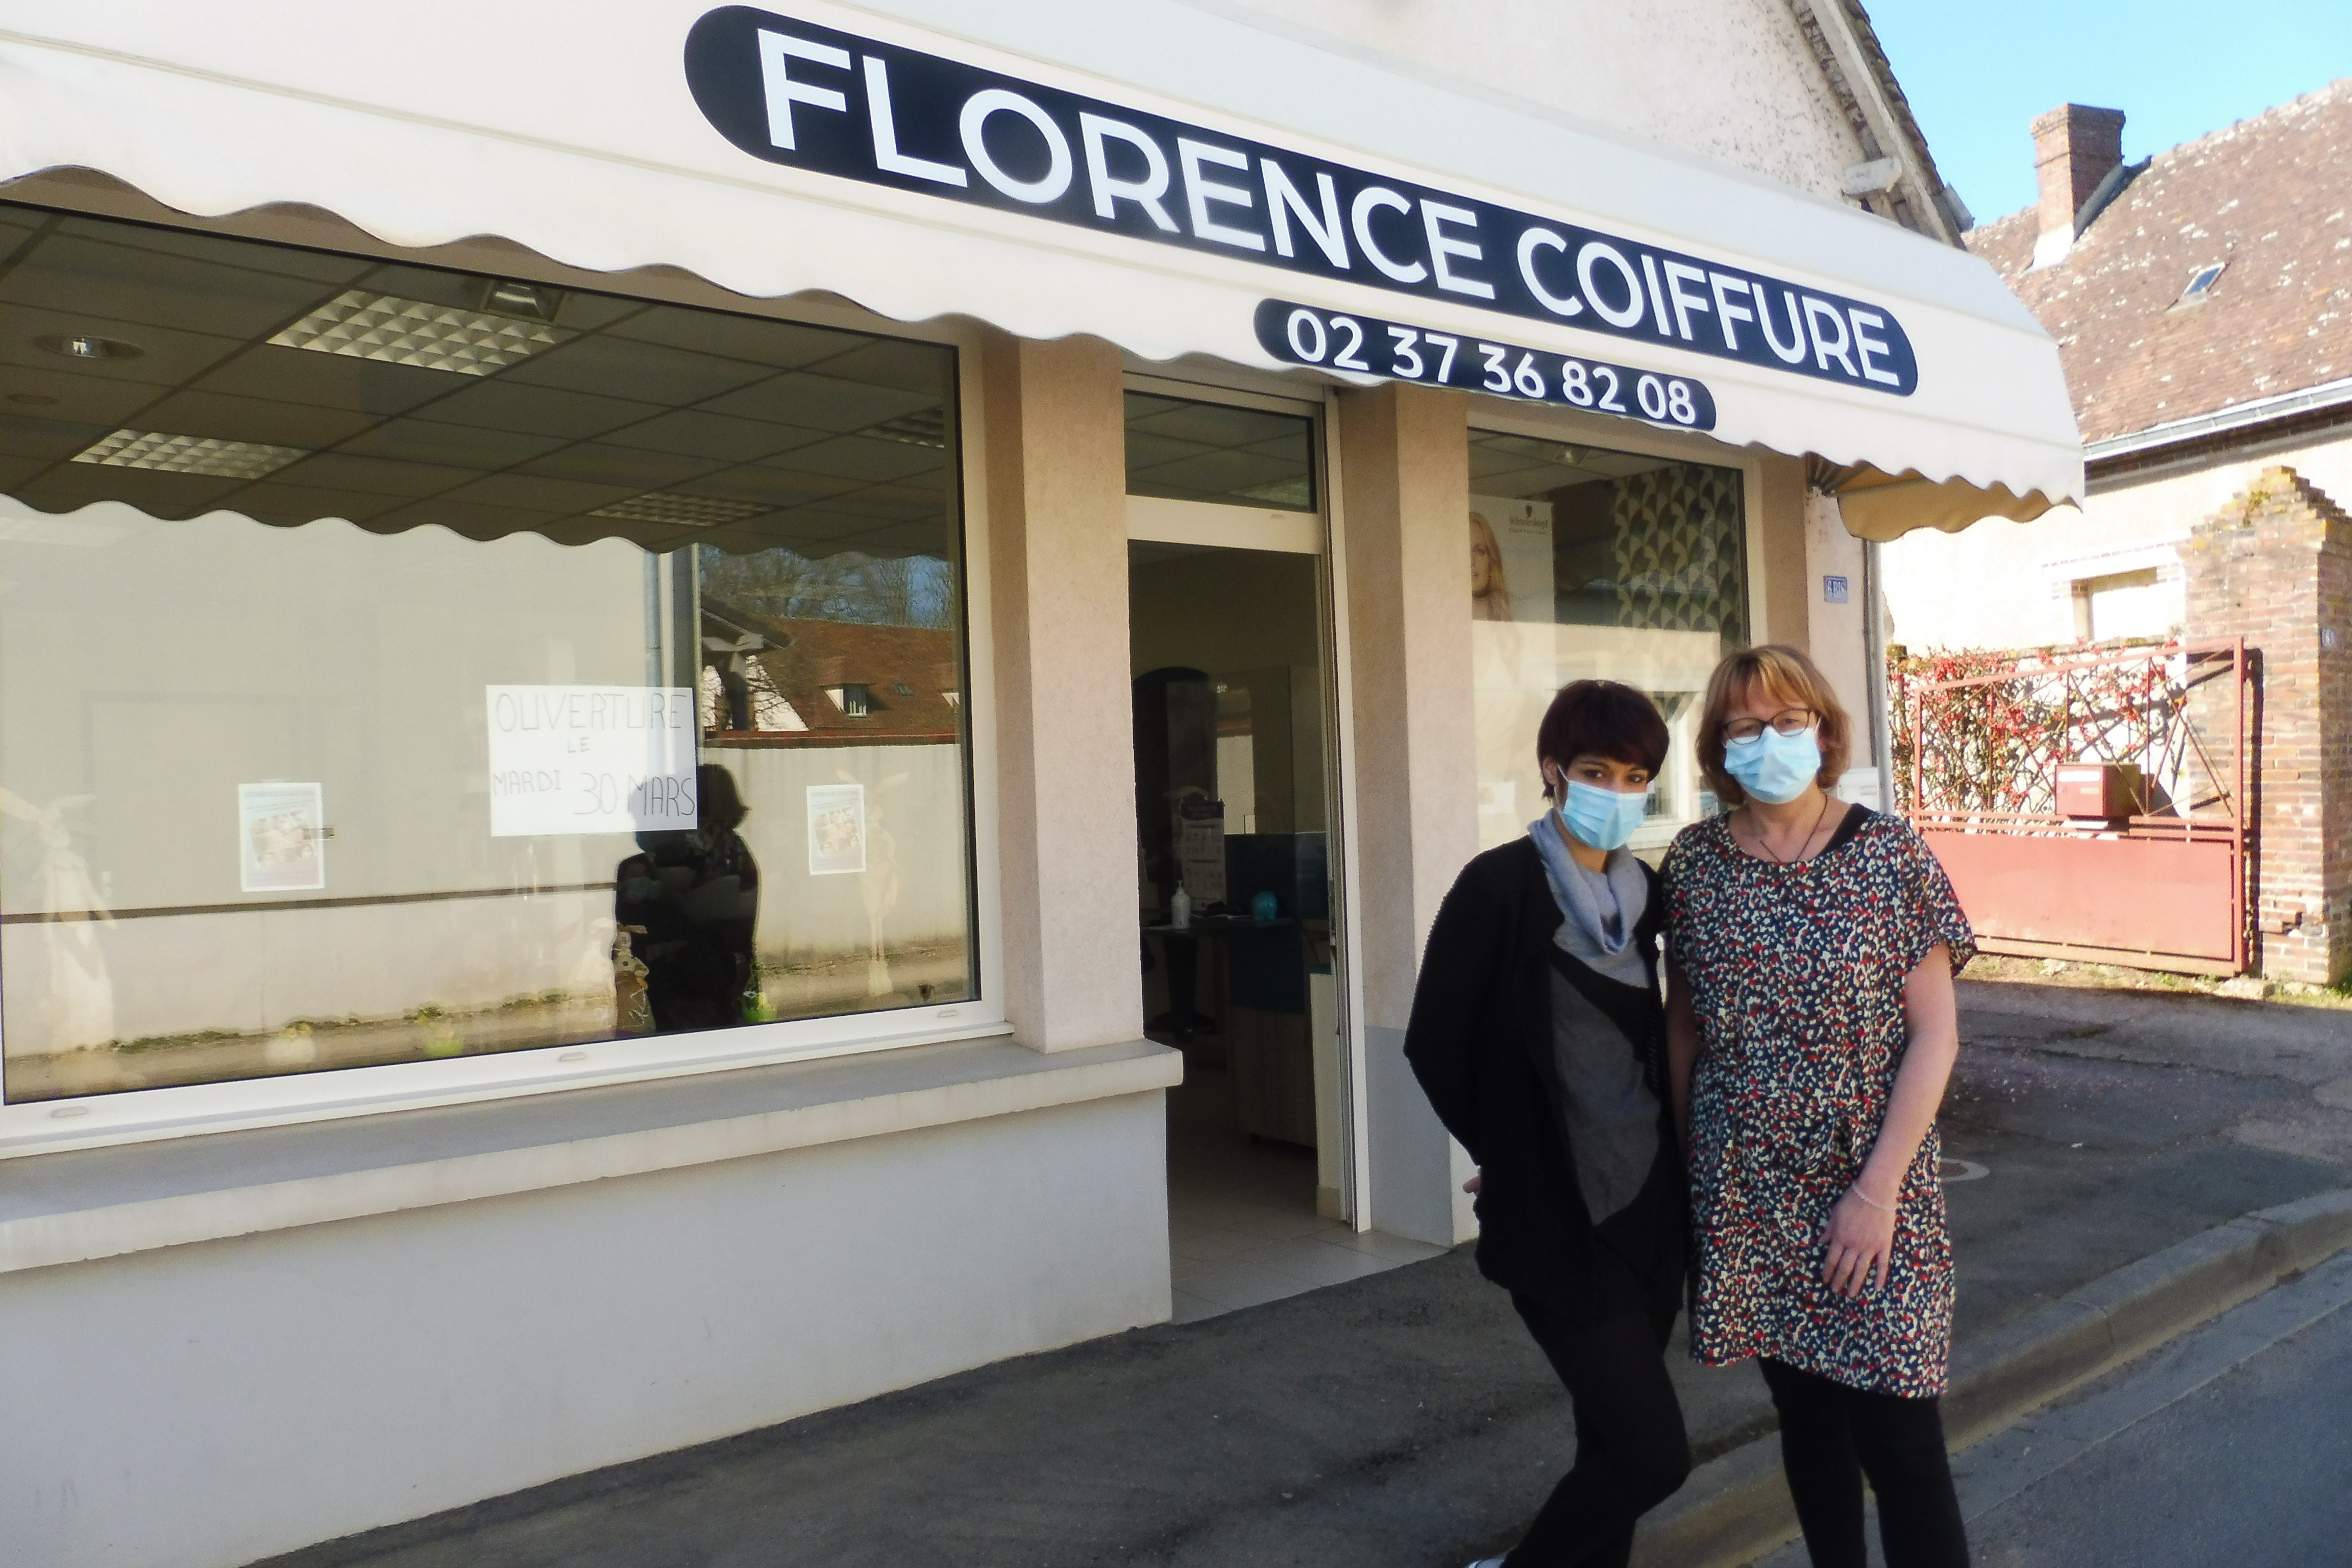 Florence Coiffure